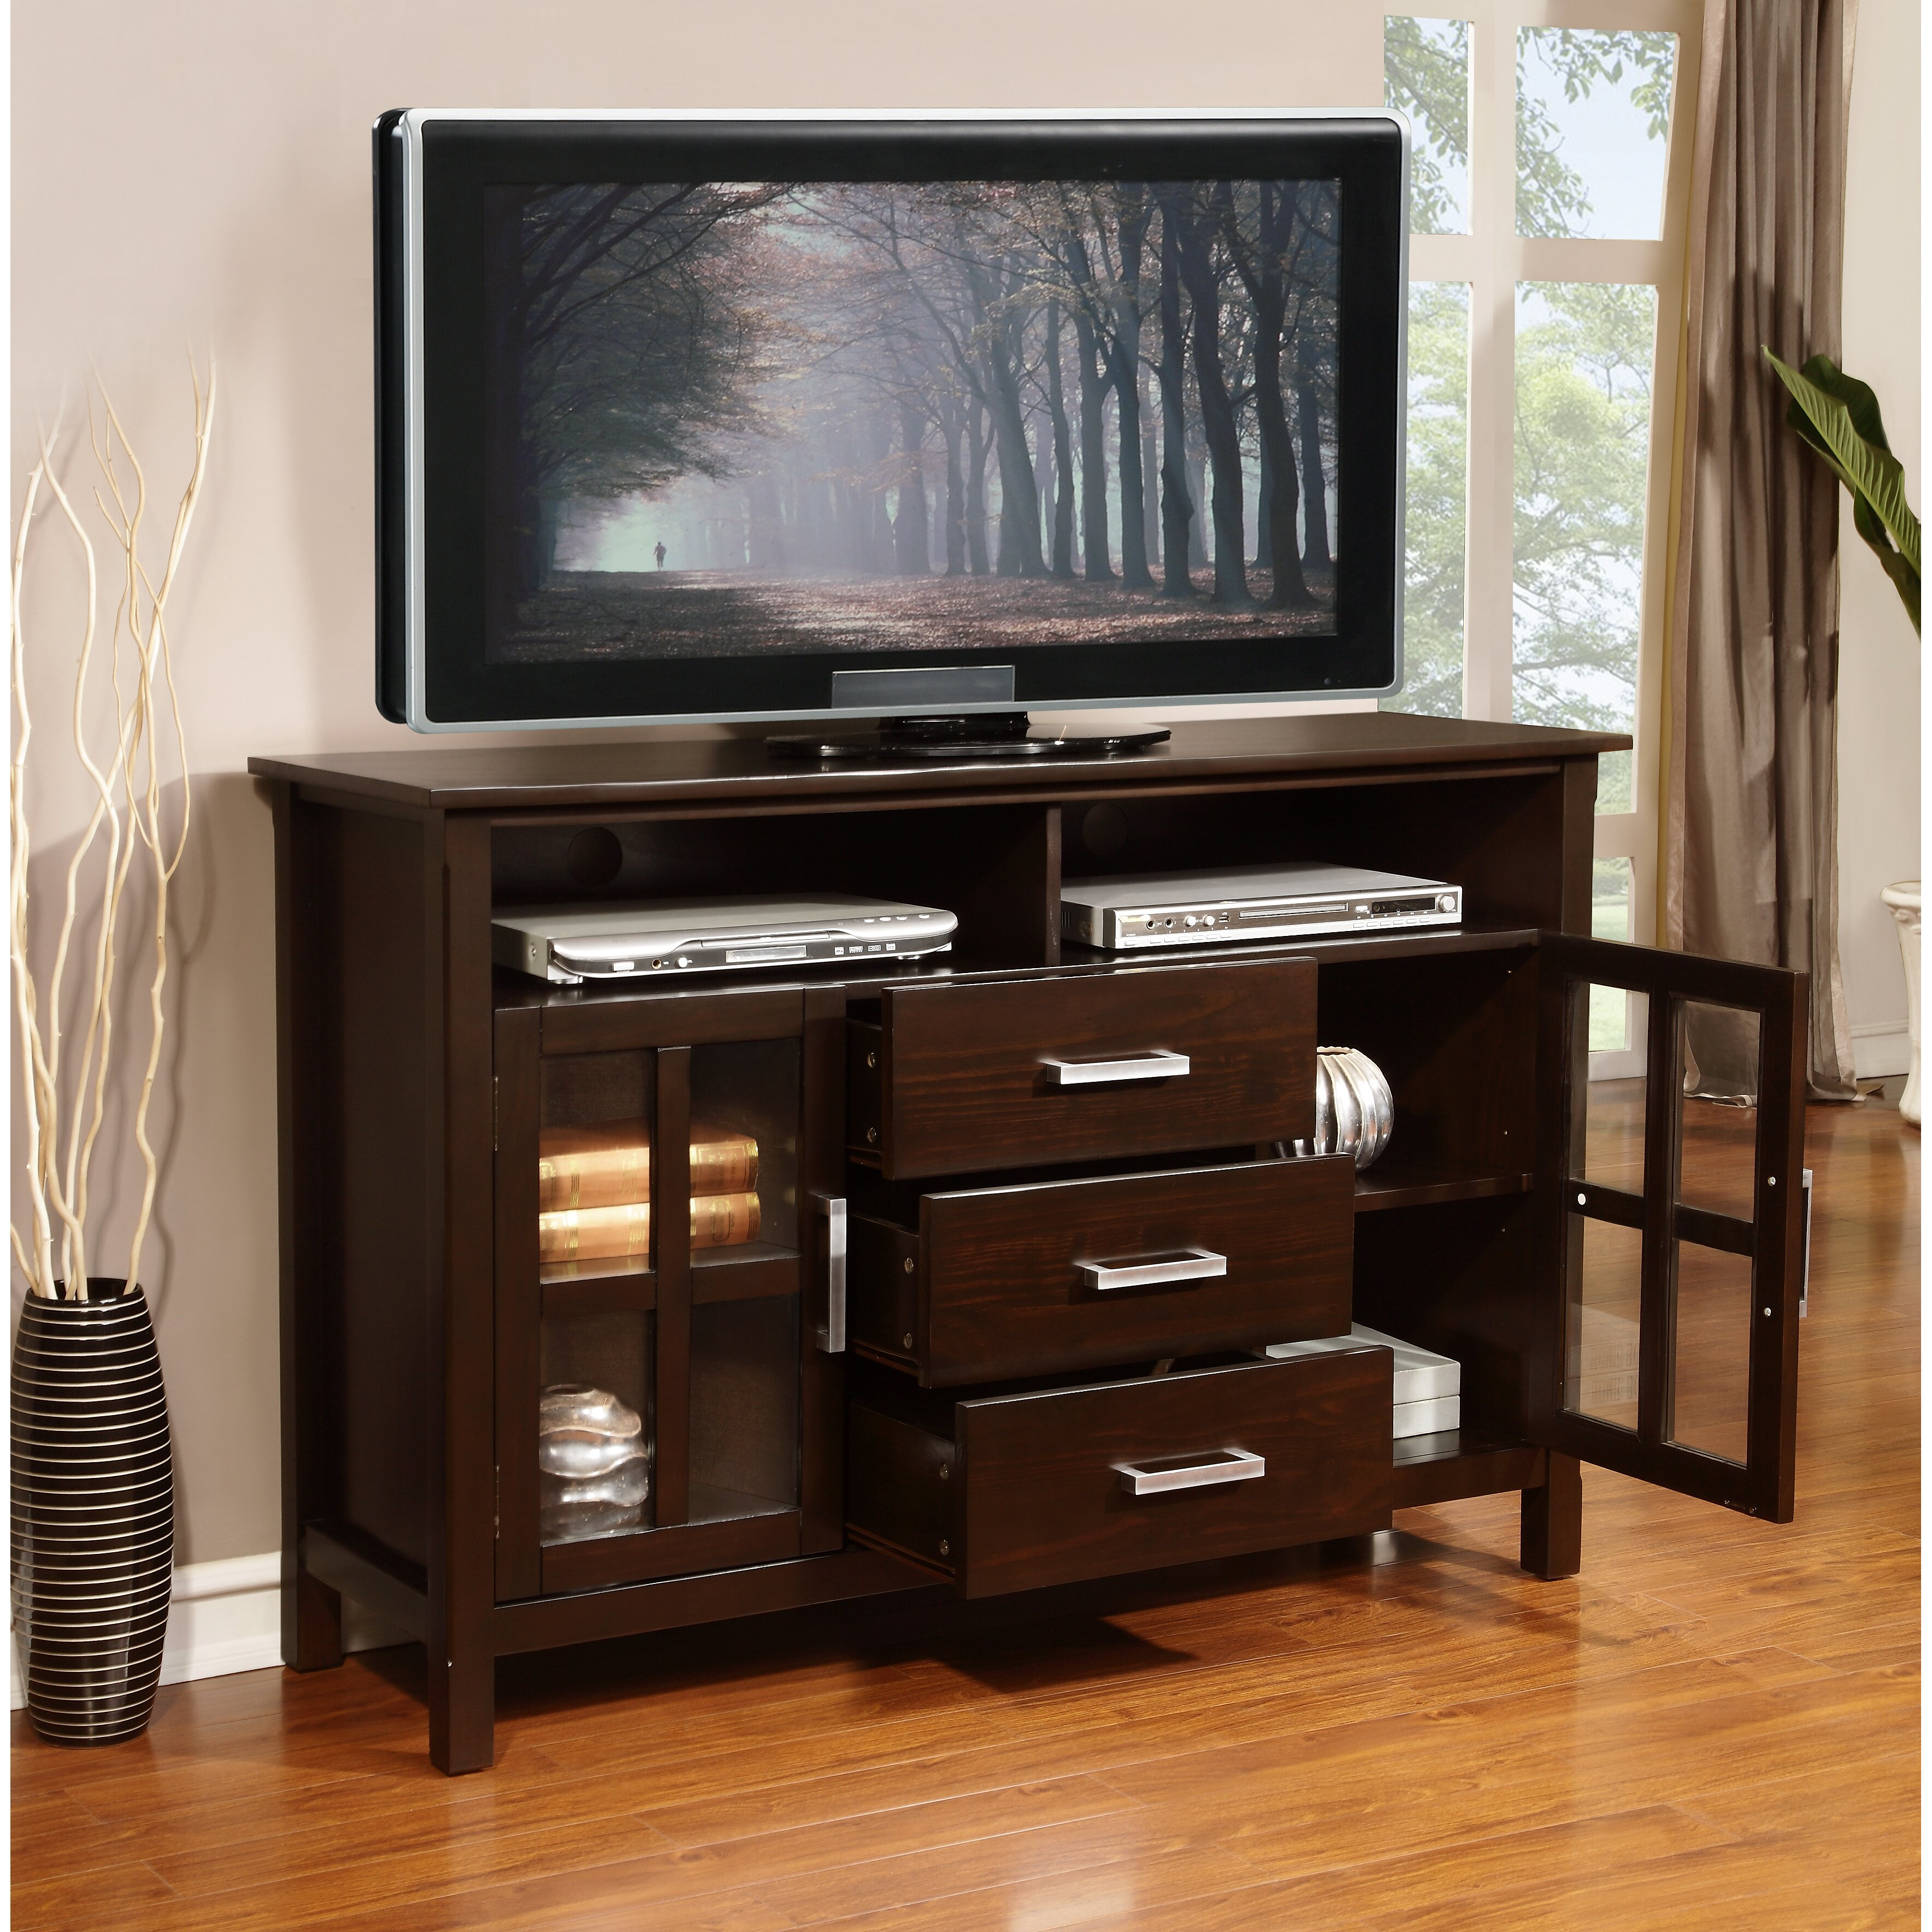 Furniture Stores In Kitchener Waterloo: Simpli Home Kitchener TV Stand & Reviews